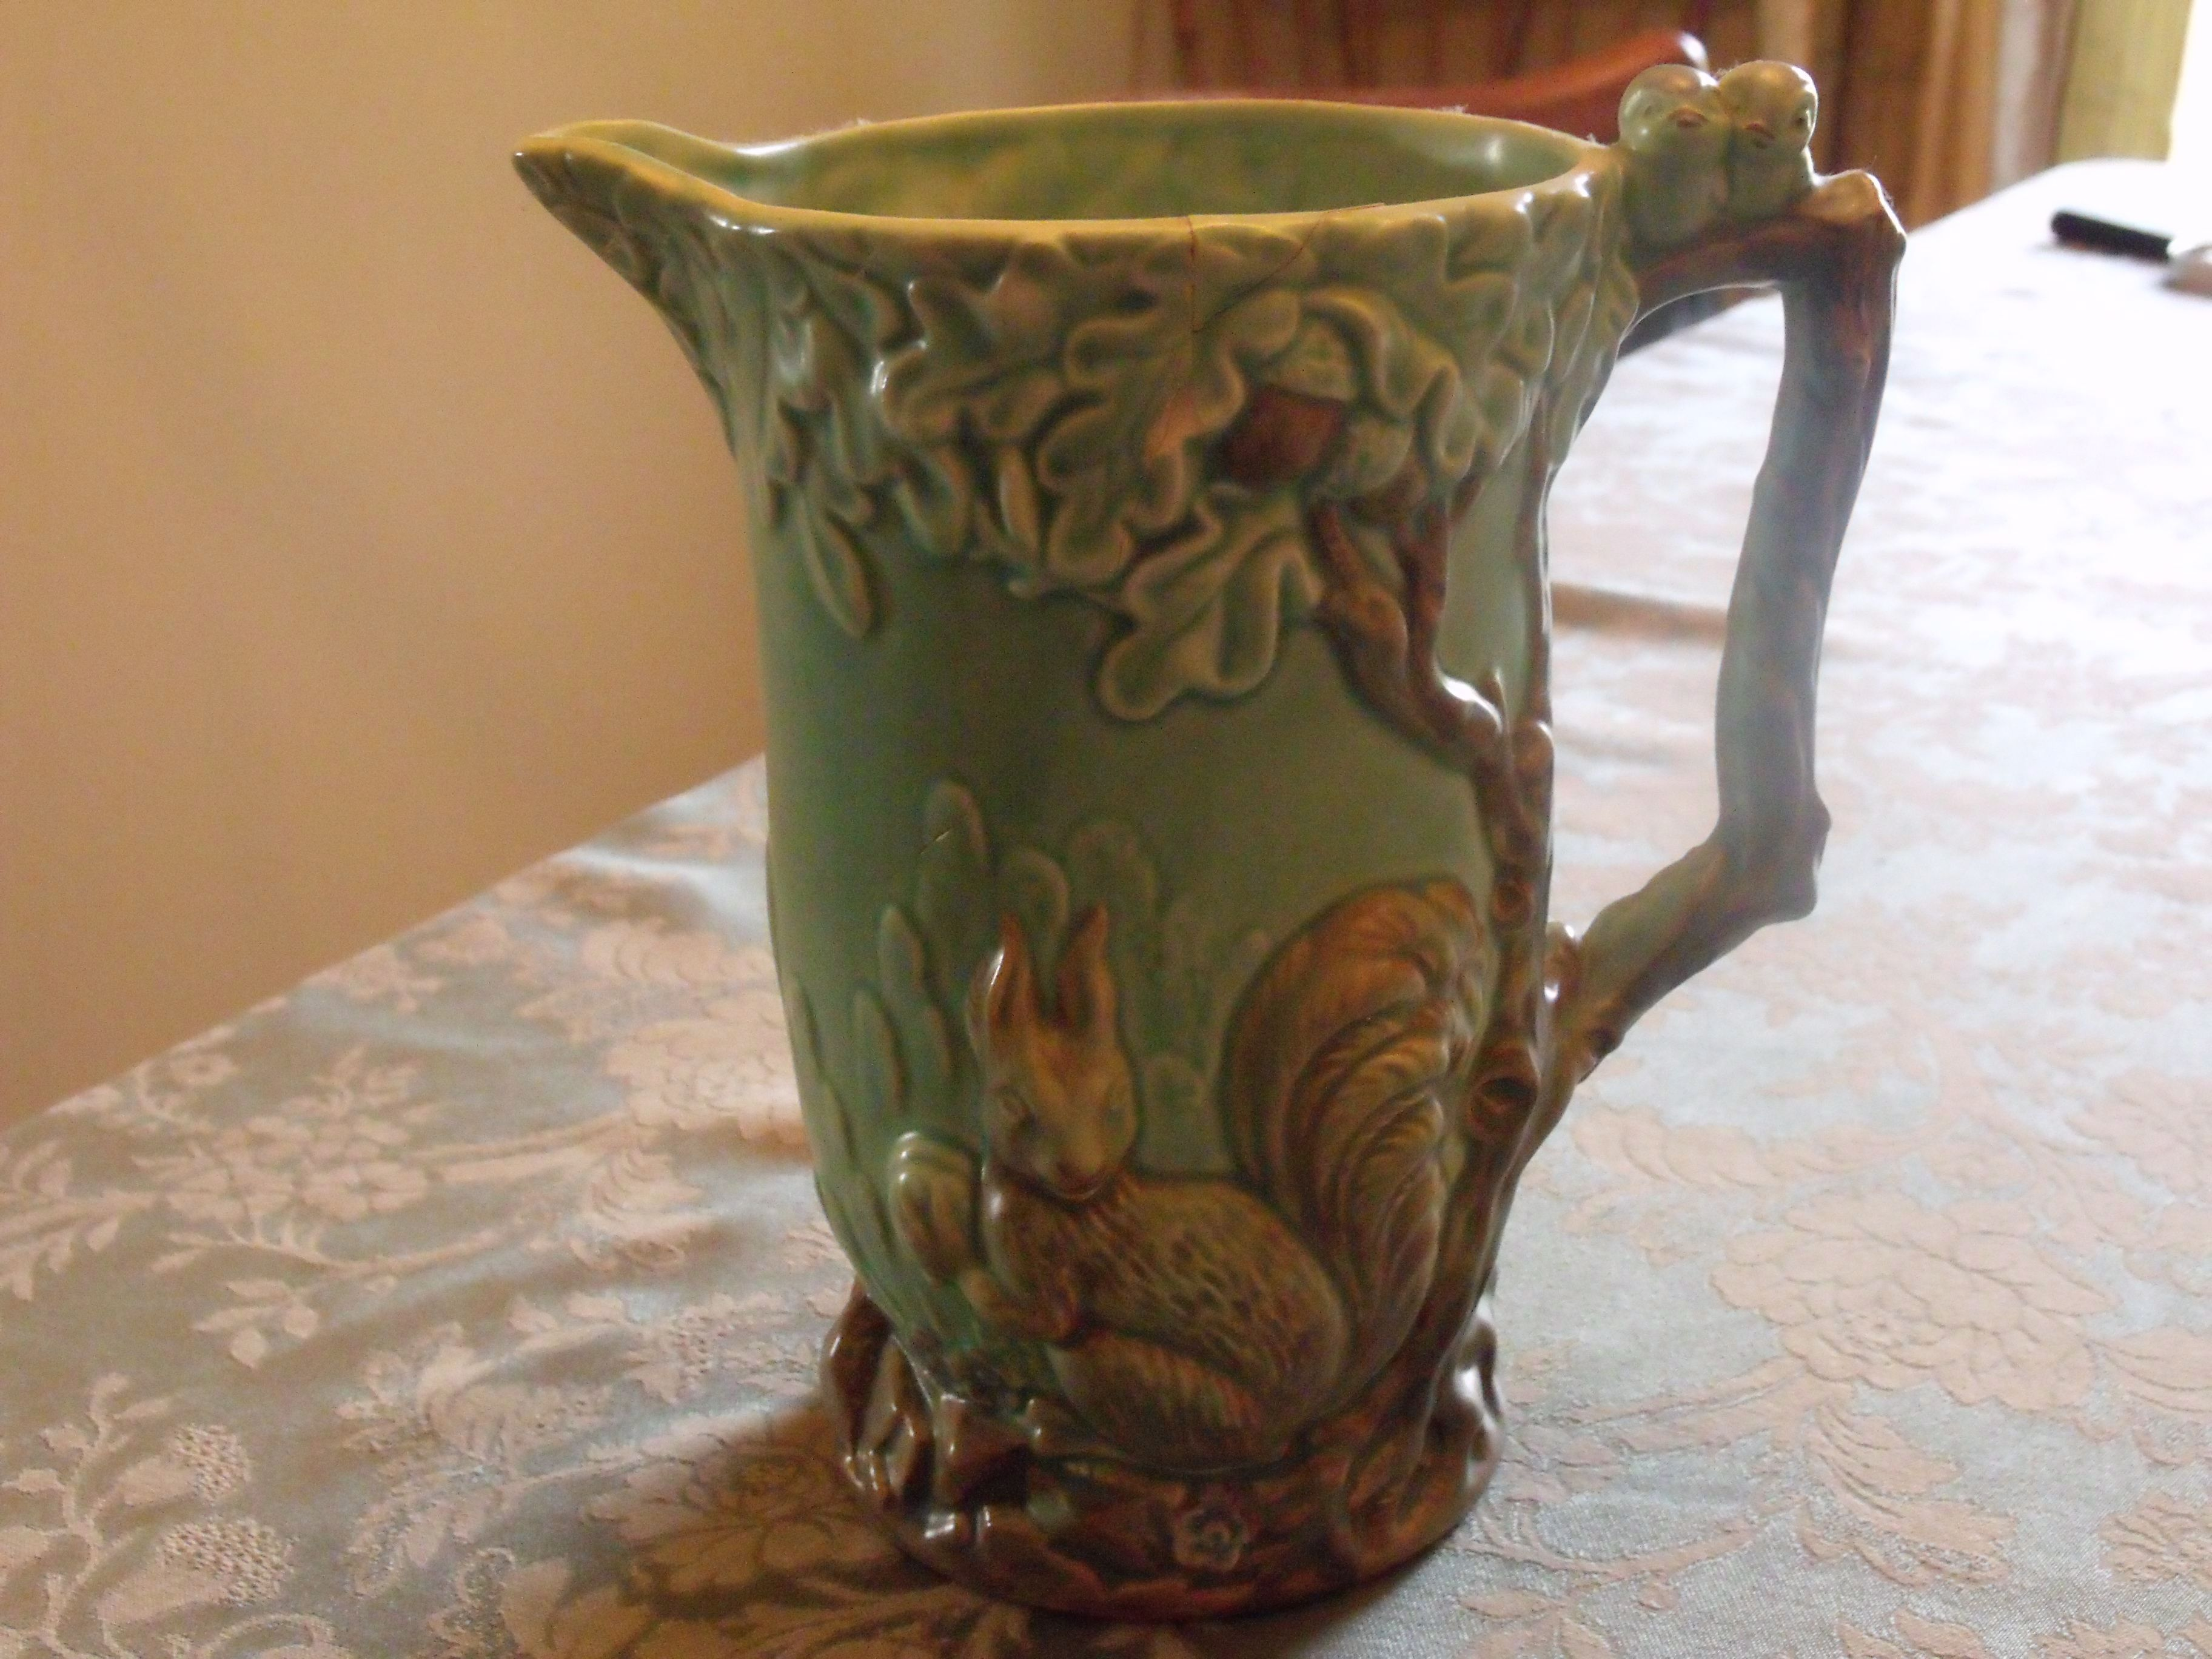 Whimsical squirrel jug by flaxman wade heath england 1930s pottery reviewsmspy